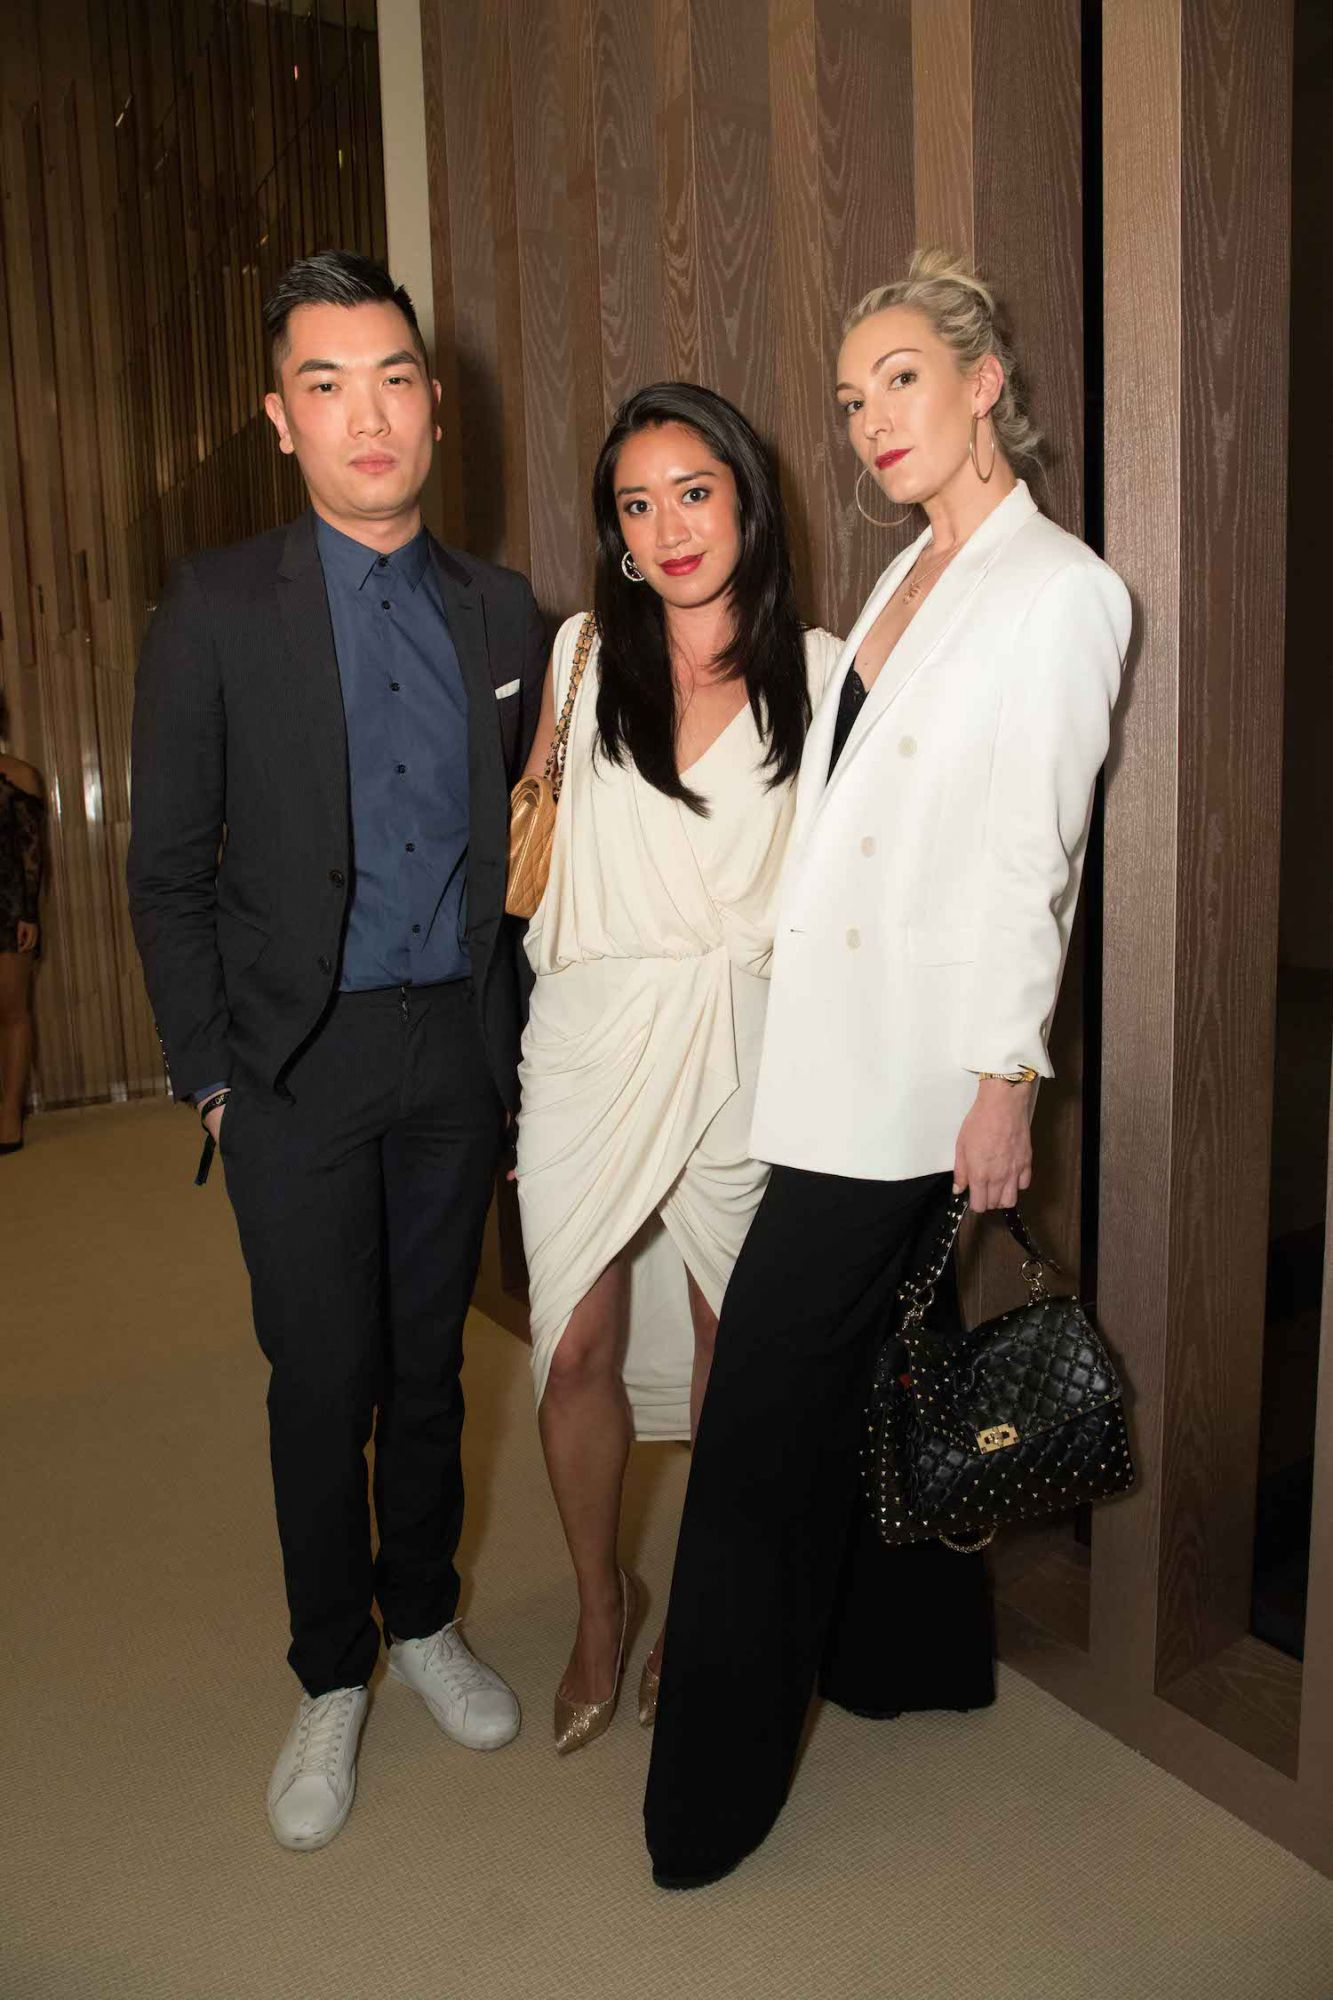 Justin Ng, Antonia Da Cruz and Olivia Croucher Buckingham